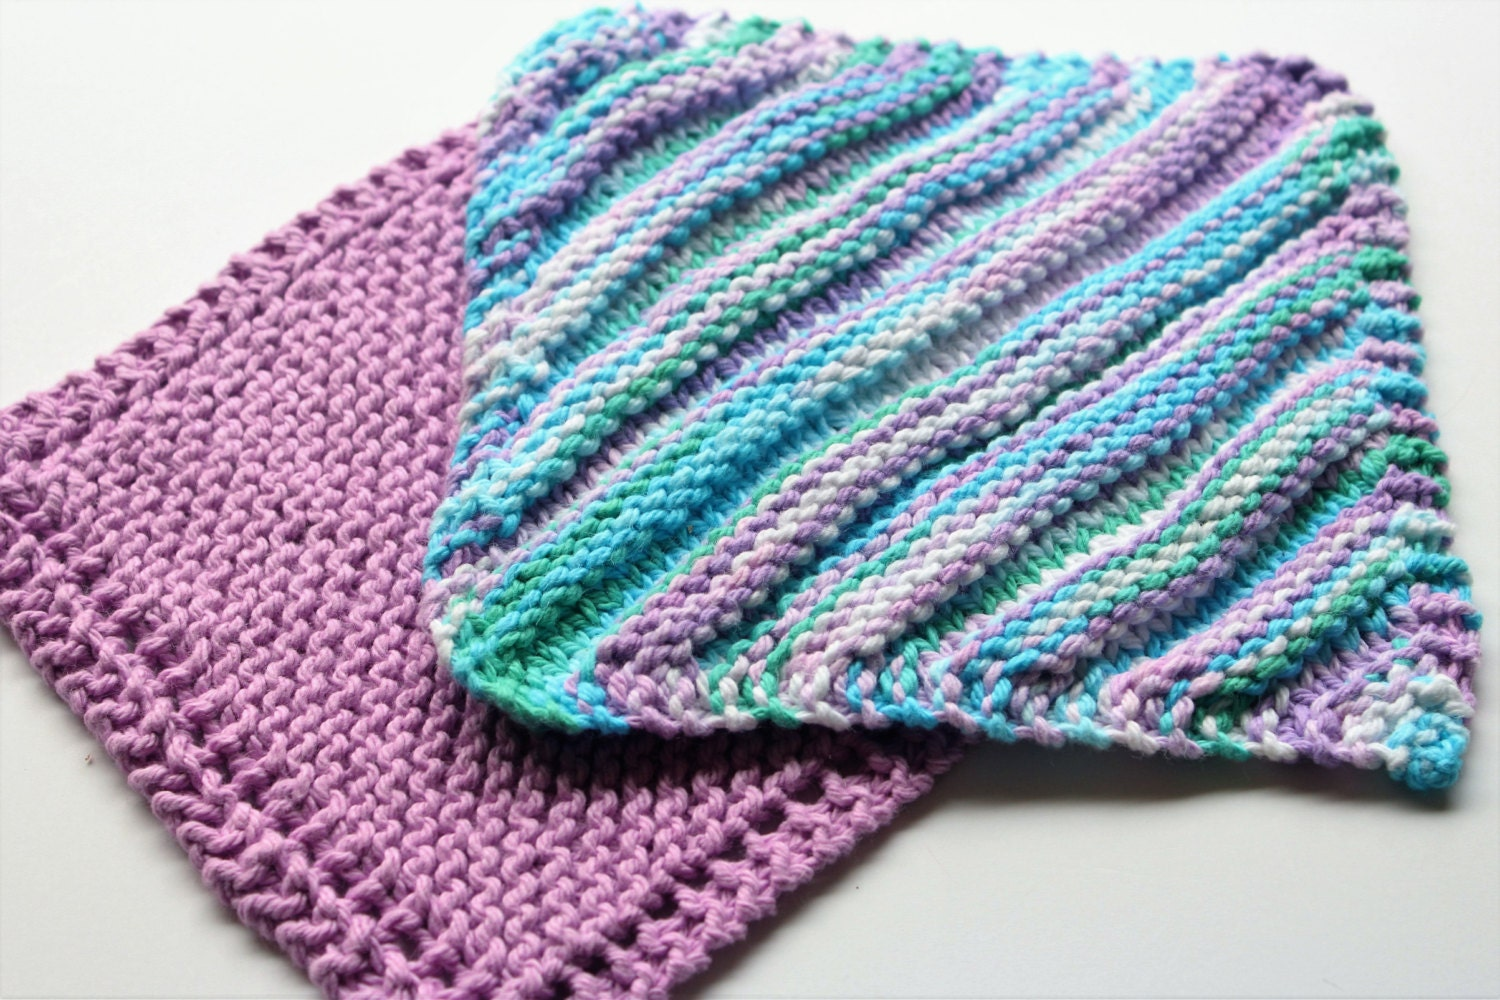 Knit Dishcloth Patterns Two Colors : Knit Dishcloth Set of 2 Knitted Washcloth Reusable Cloth